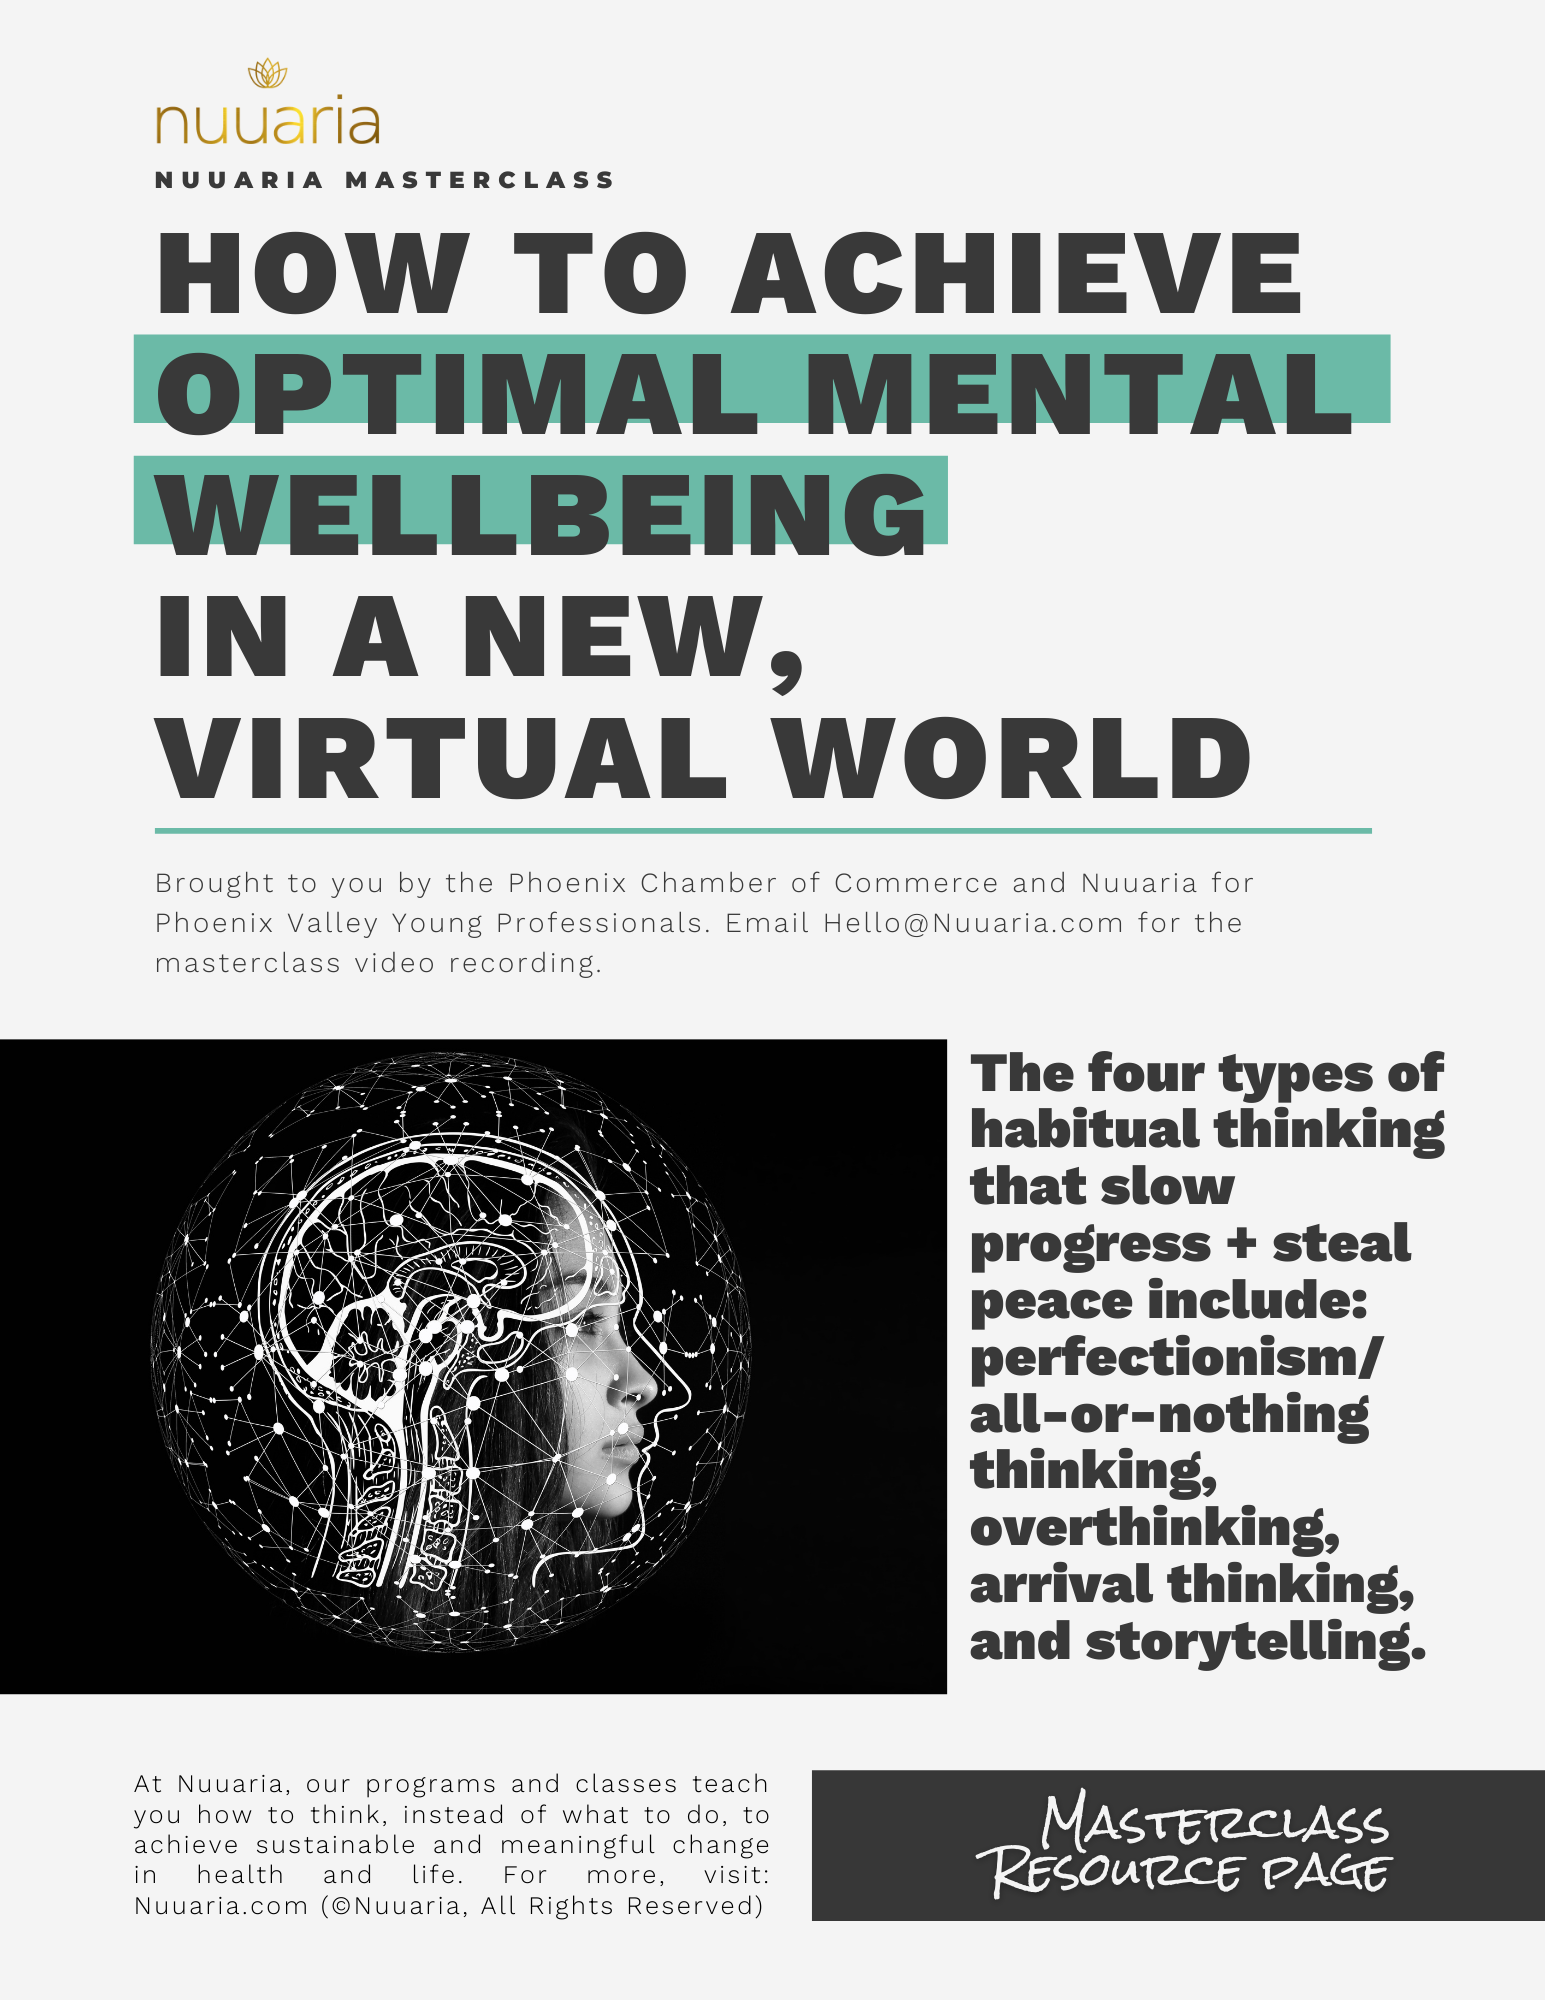 nuuaria masterclass resource page for How to Achieve Optimal Mental Wellbeing  in a New, Virtual World